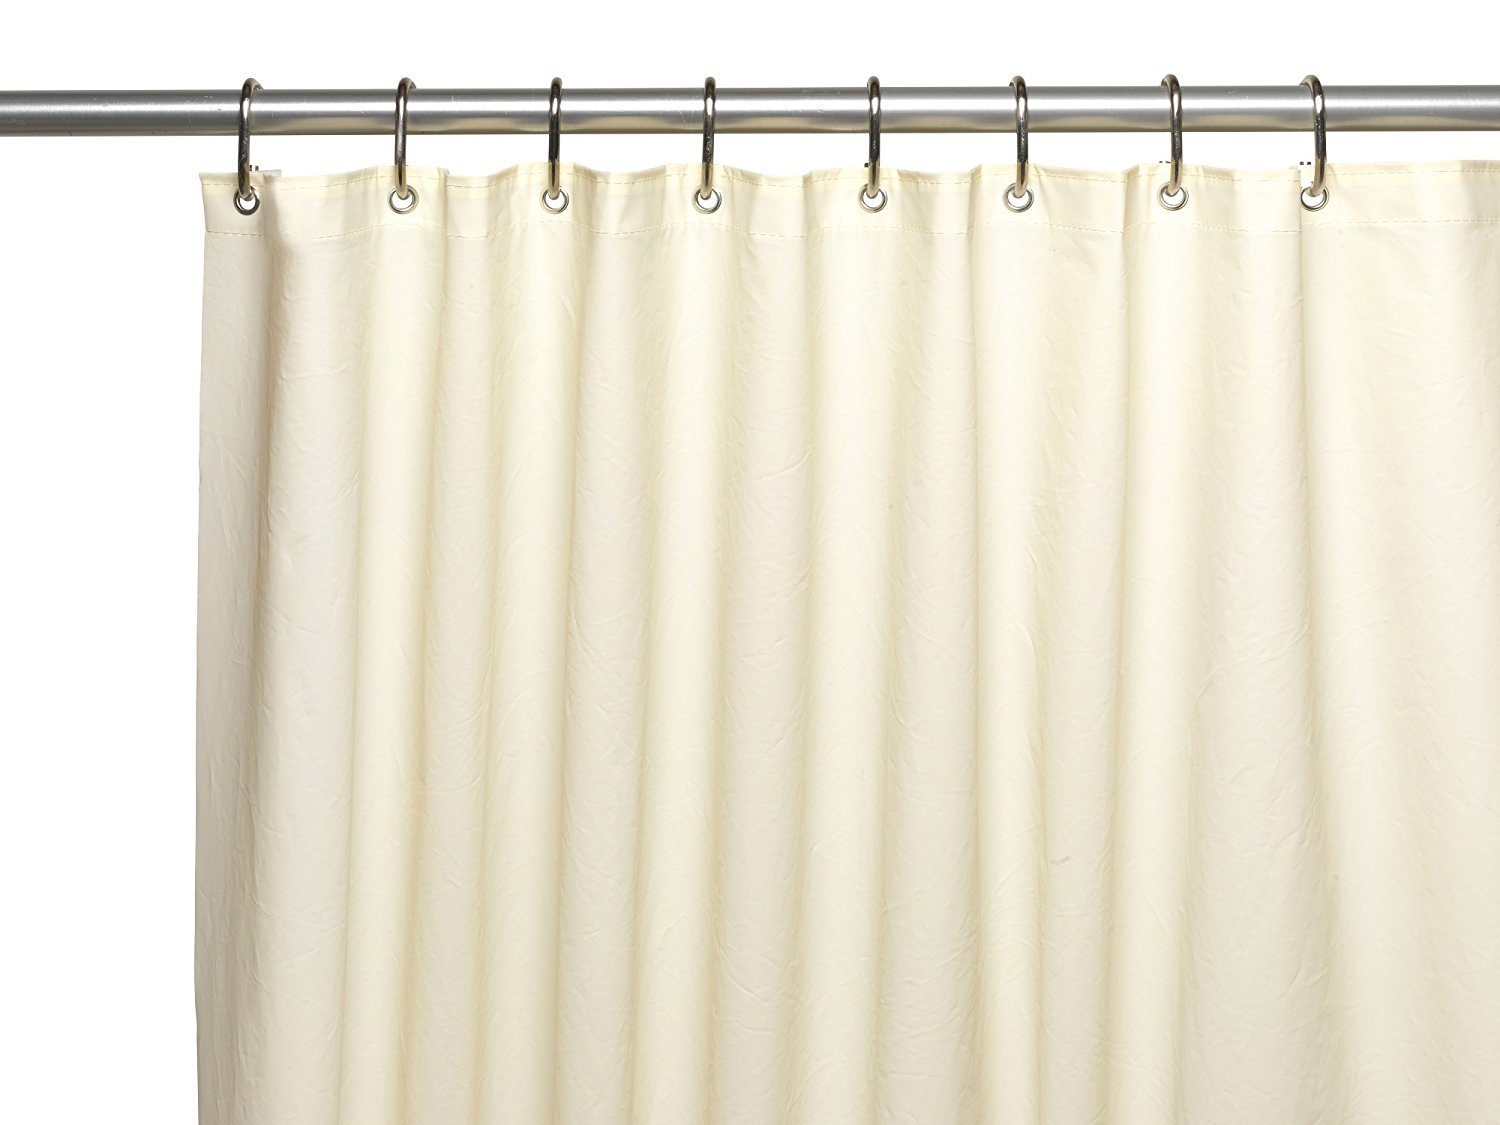 Amazon Royal Bath Extra Long And Heavy 10 Gauge PEVA Non Toxic Shower Curtain Liner With Metal Grommets 72 X 84